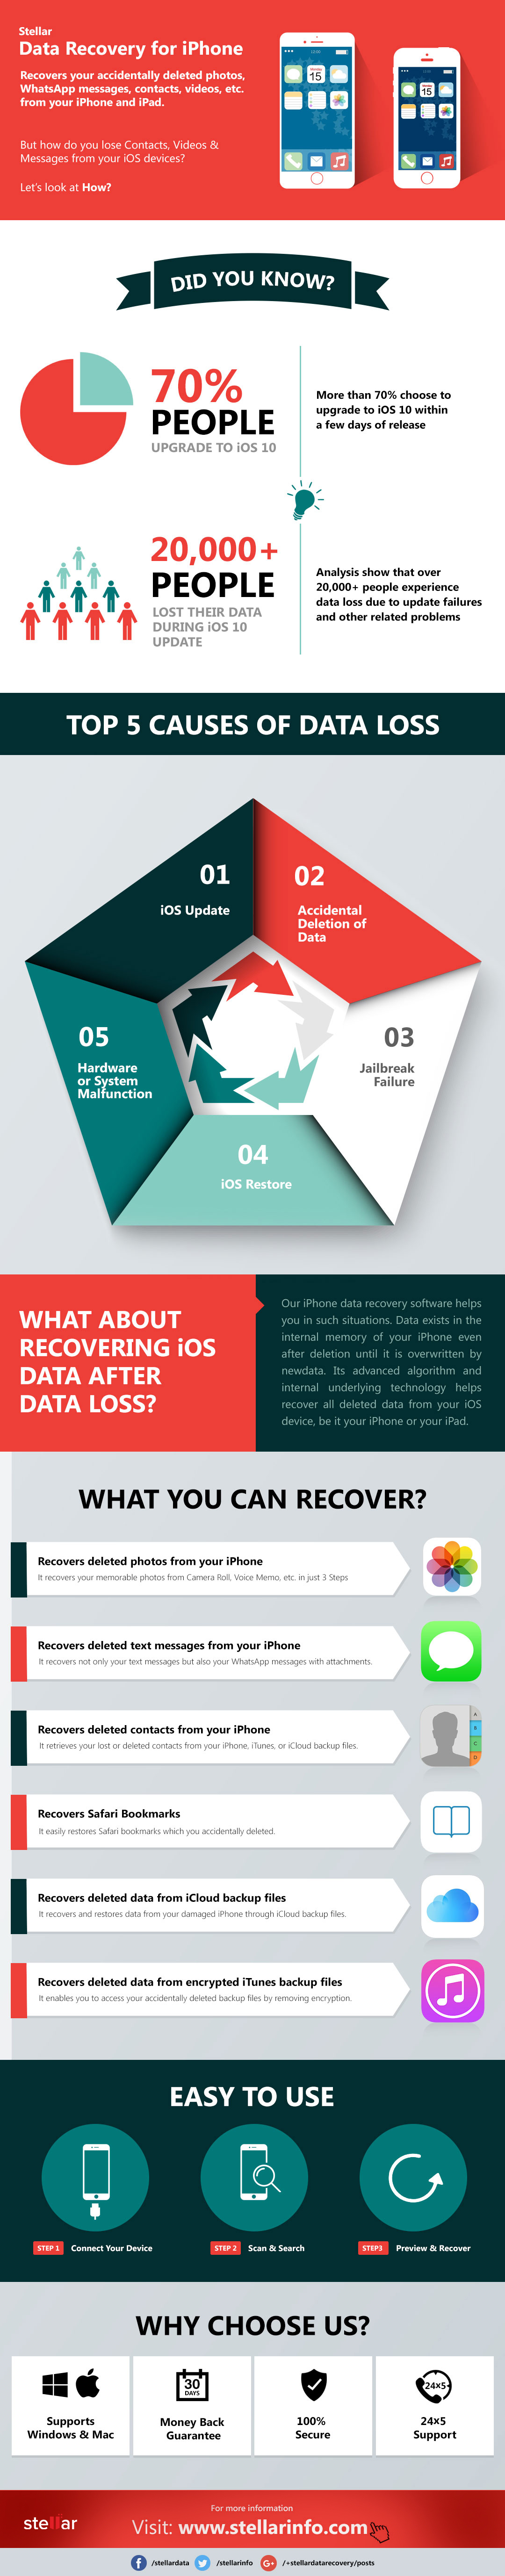 An Infographic to Conquer iPhone Data Loss